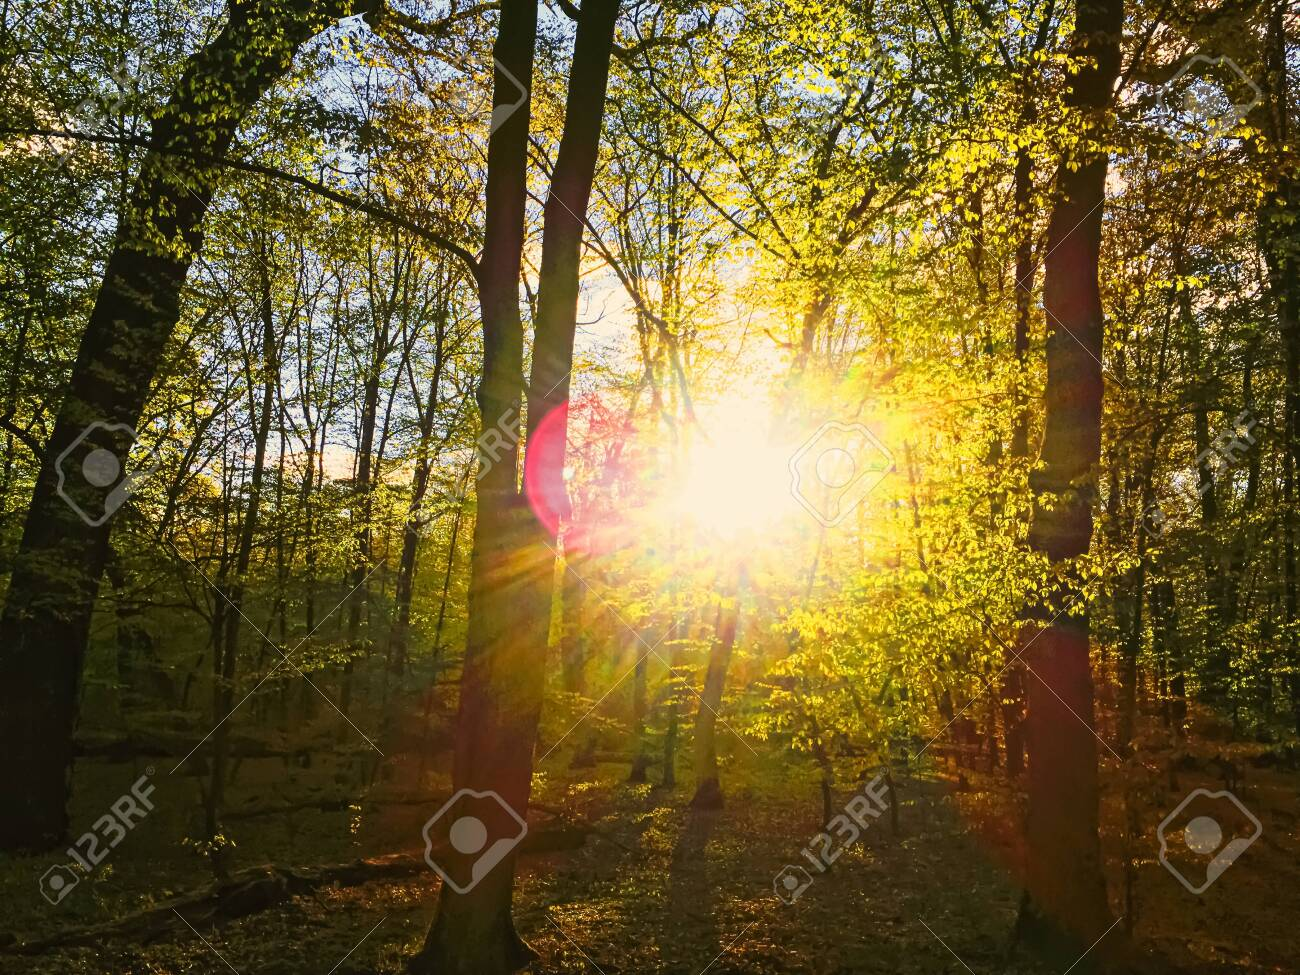 Spring forest landscape at sunset or sunrise, nature and environment - 147877334